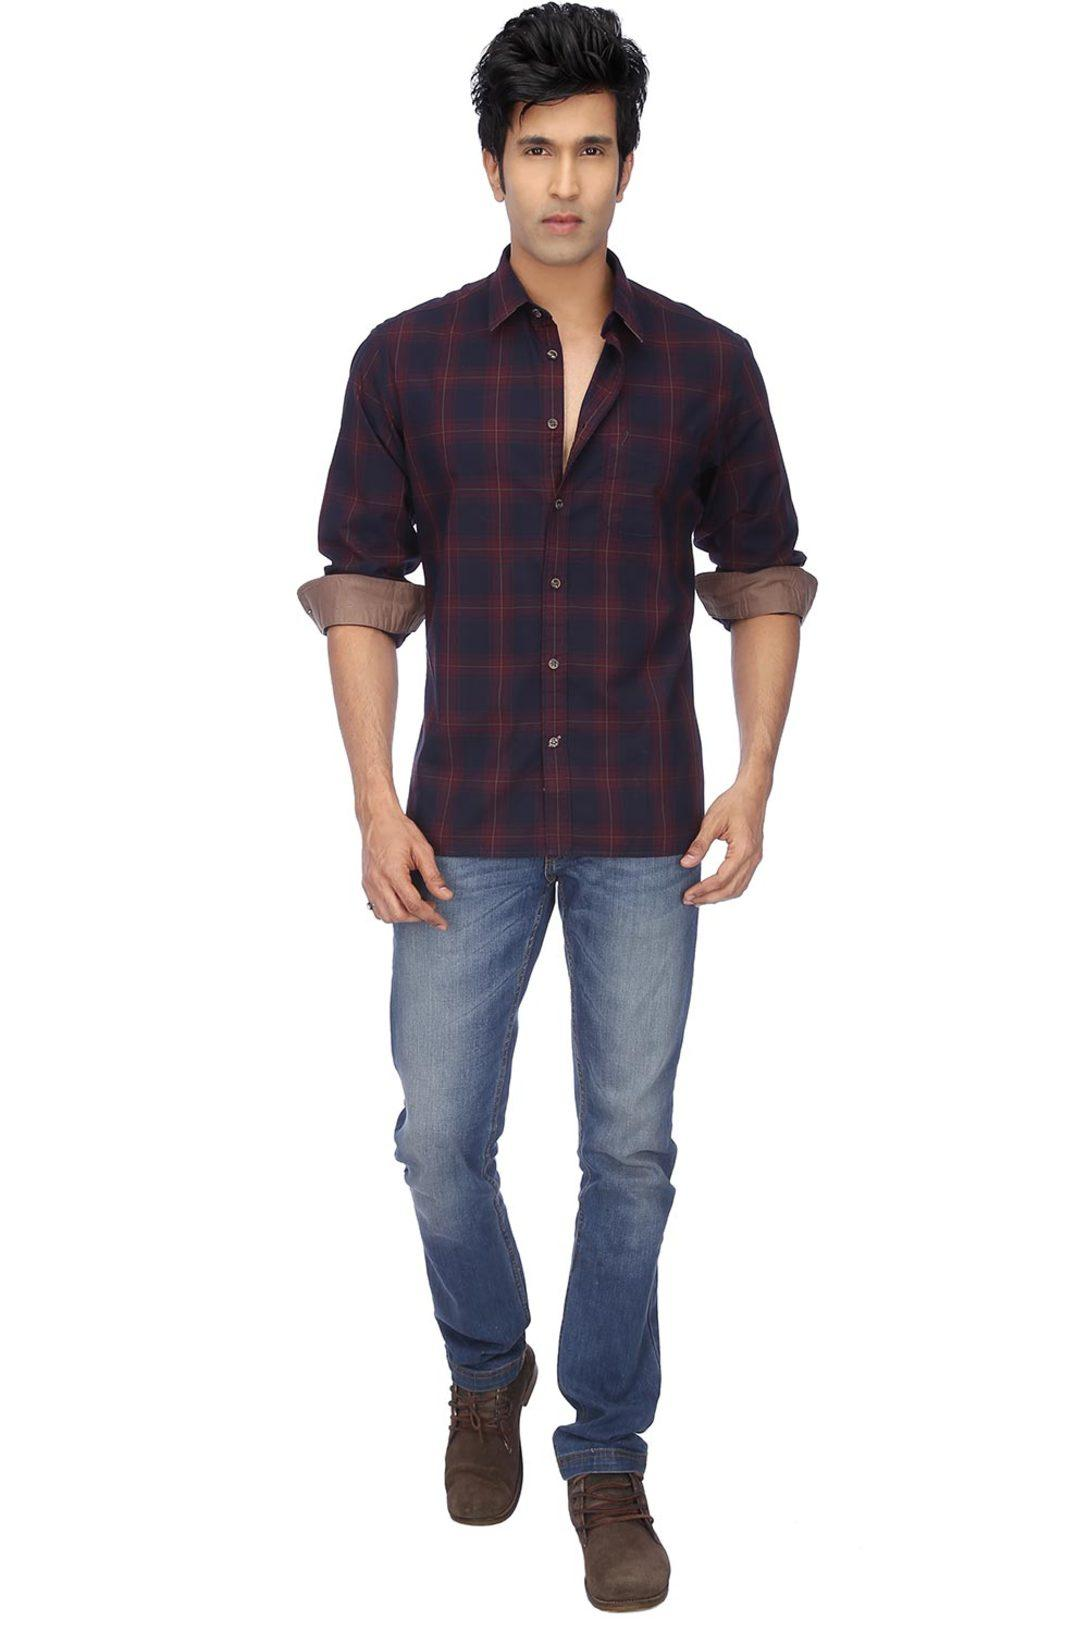 fa37227eb55 Buy Indian Terrain T Shirts Online - Cotswold Hire